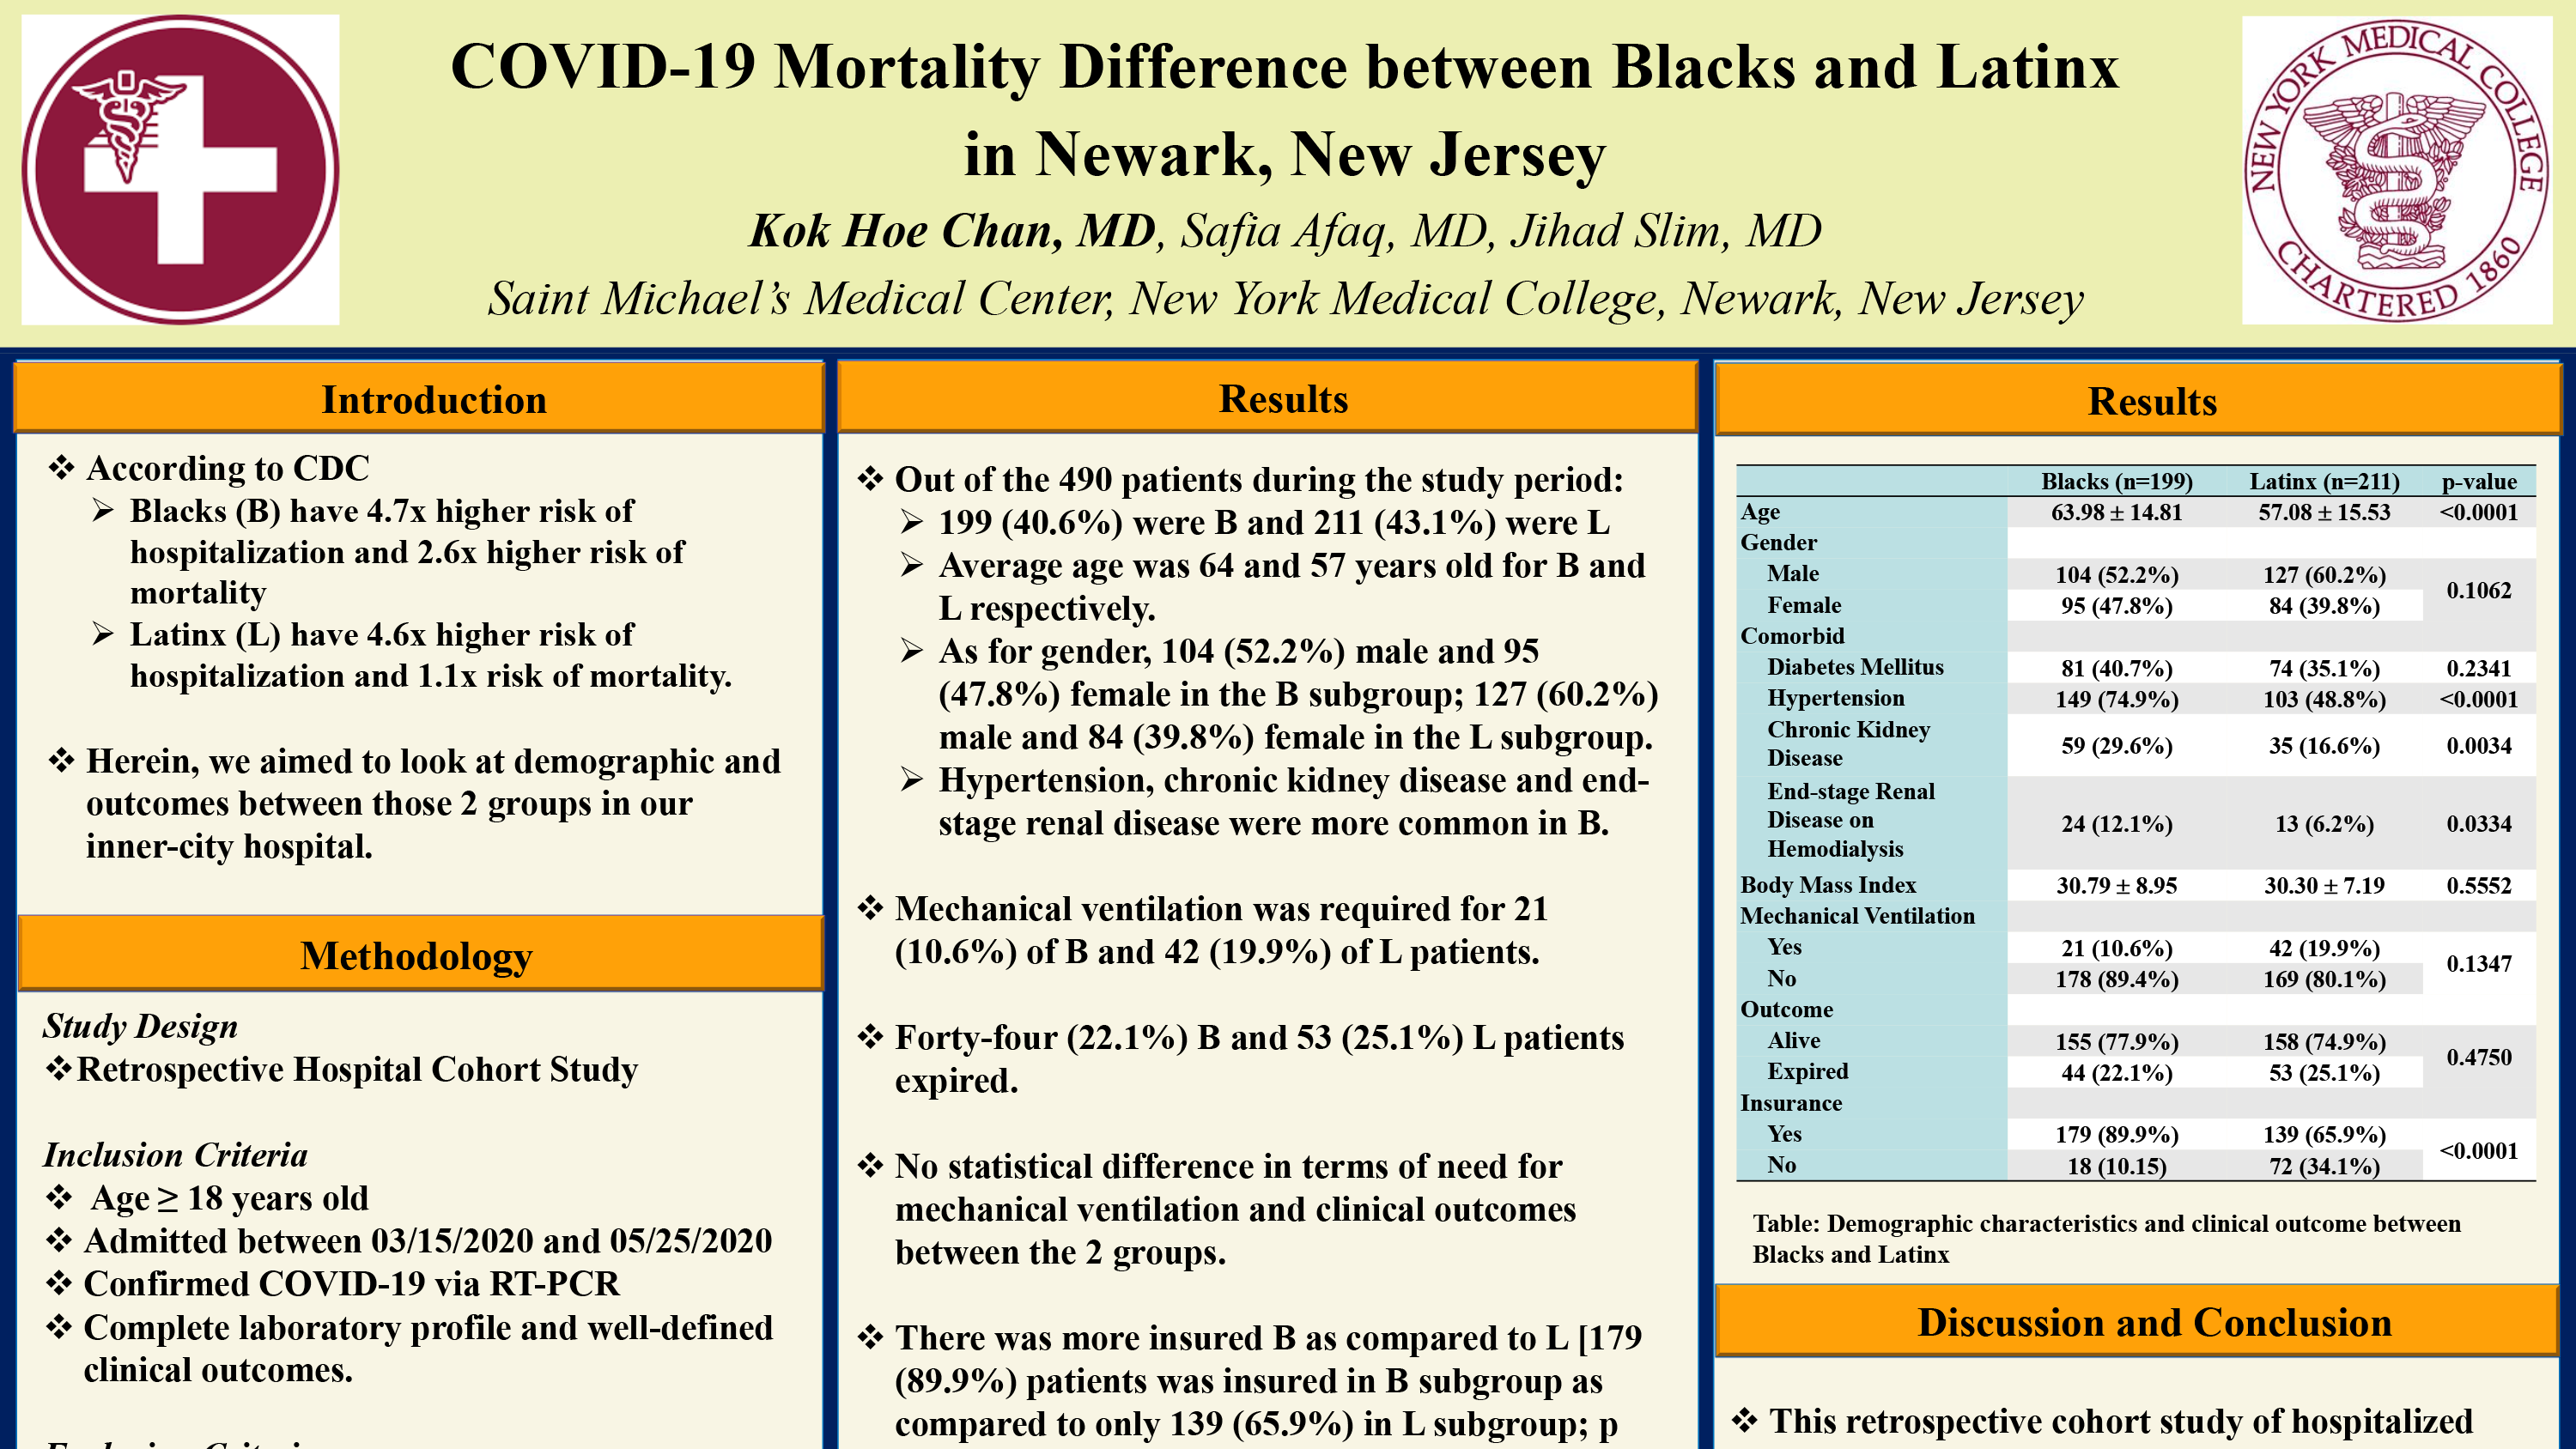 2-R-10-COVID-19 Mortality Difference between Blacks and Latinx in Newark New Jersey